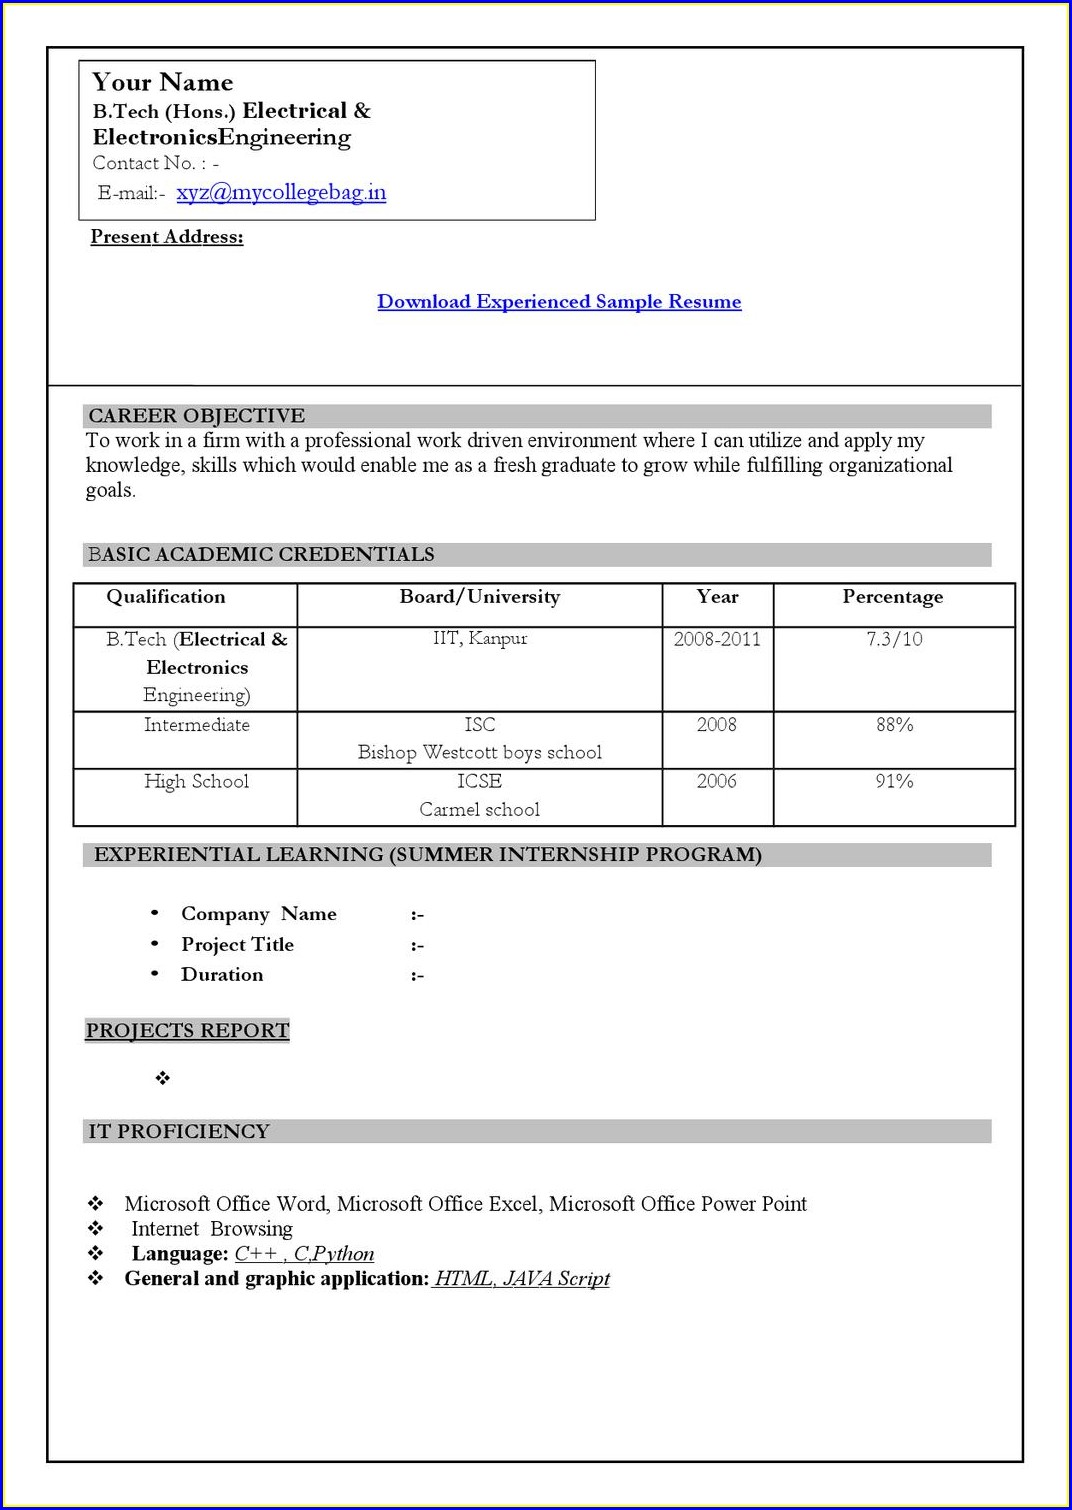 Resume Samples For Freshers Engineers Pdf